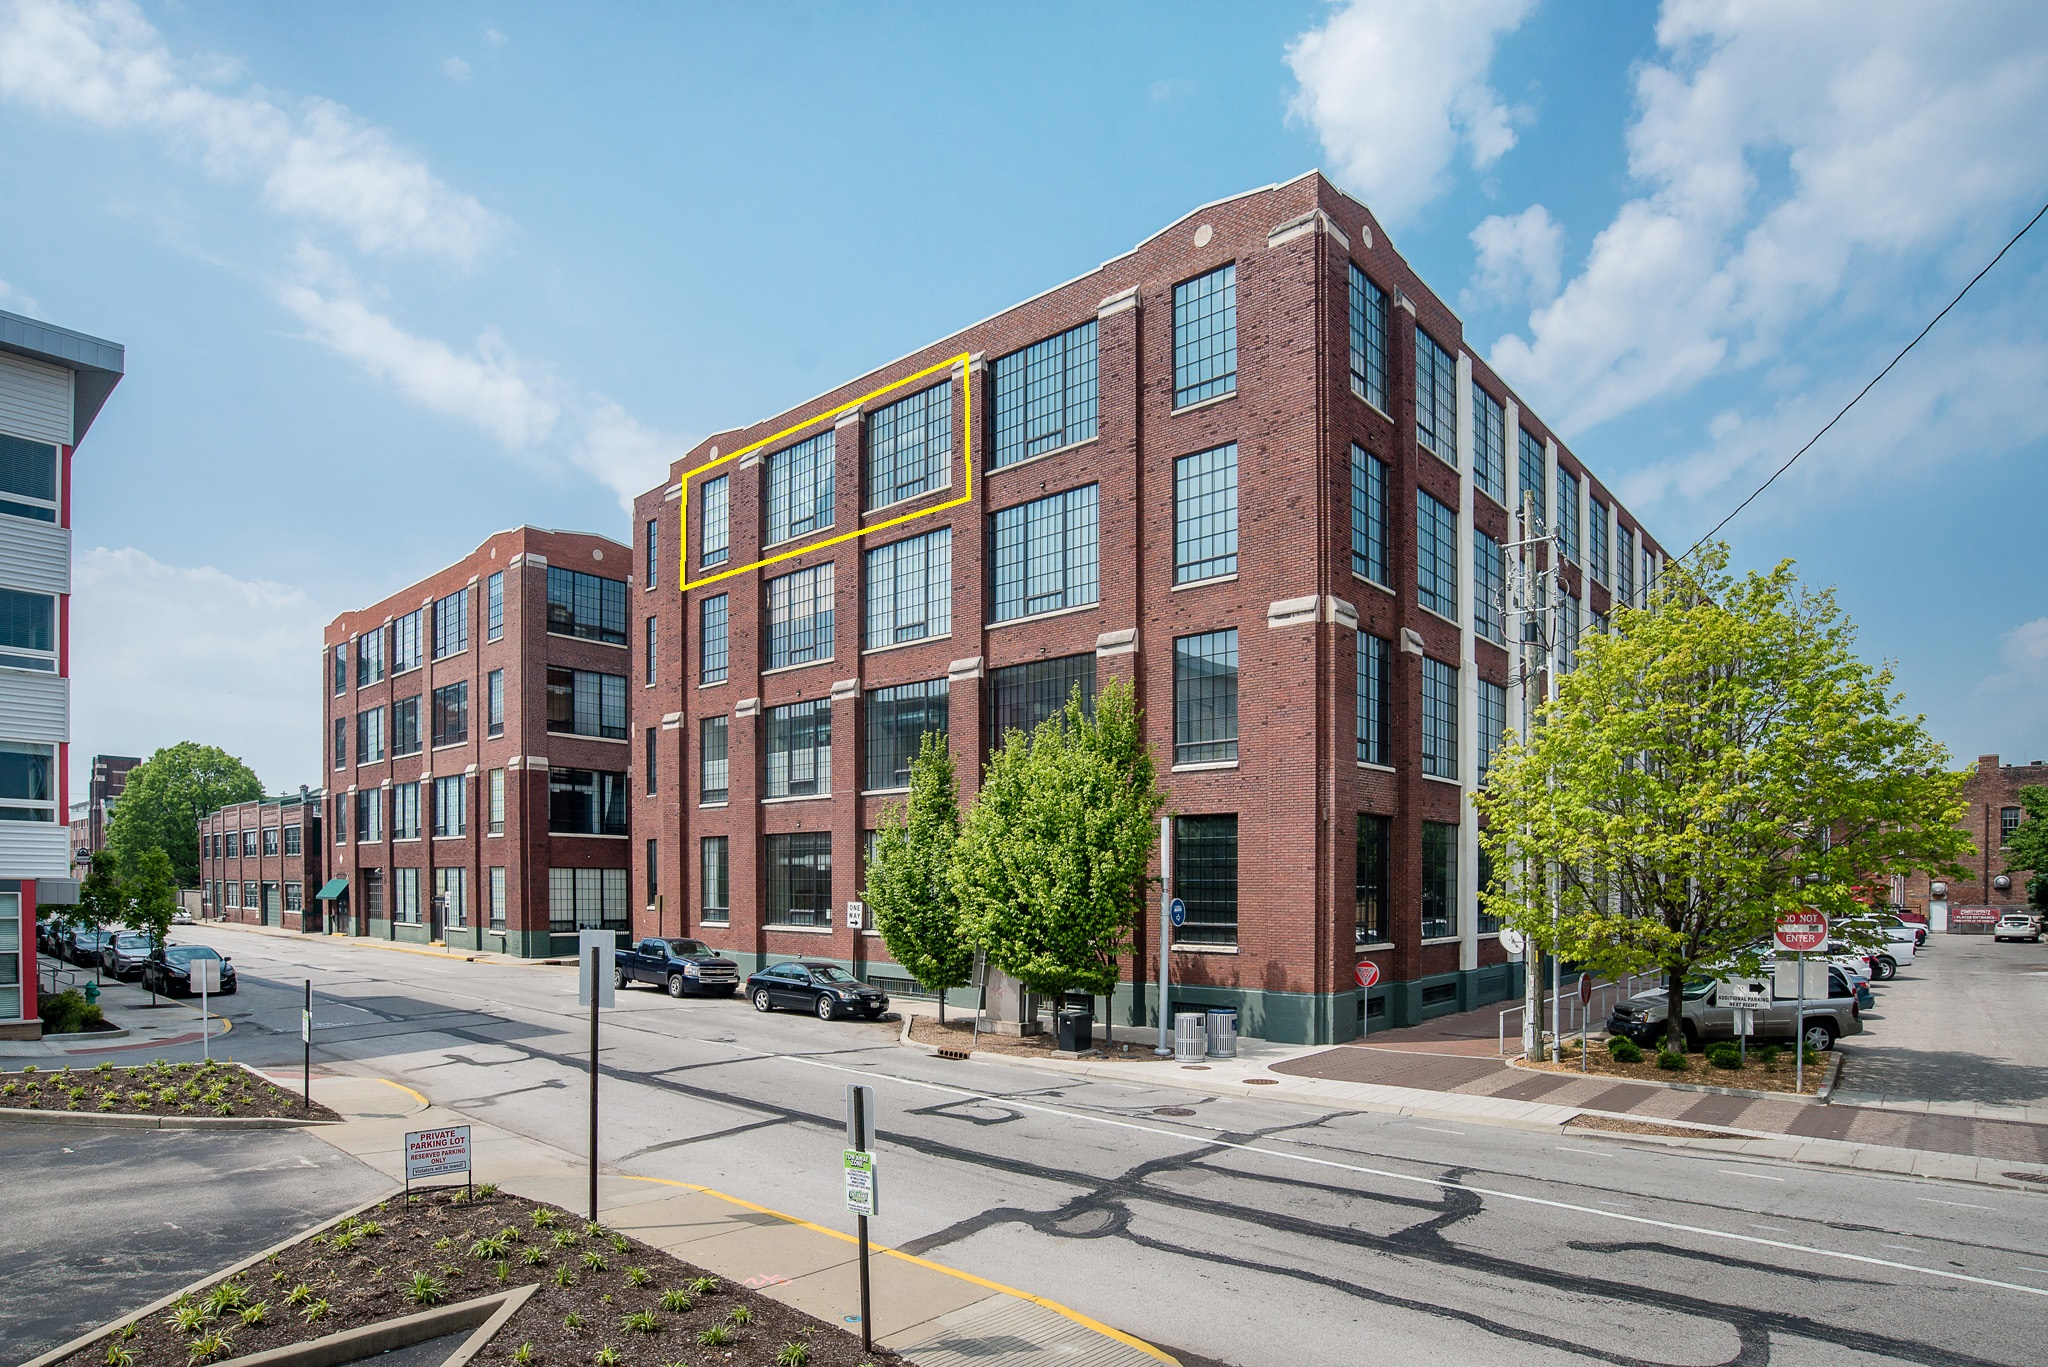 624 E Walnut Condo 46 Indpls IN 46204 Mill 9 Phase 1 - Mitch Rolsky with City Homes And Lifestyle (1 fh)